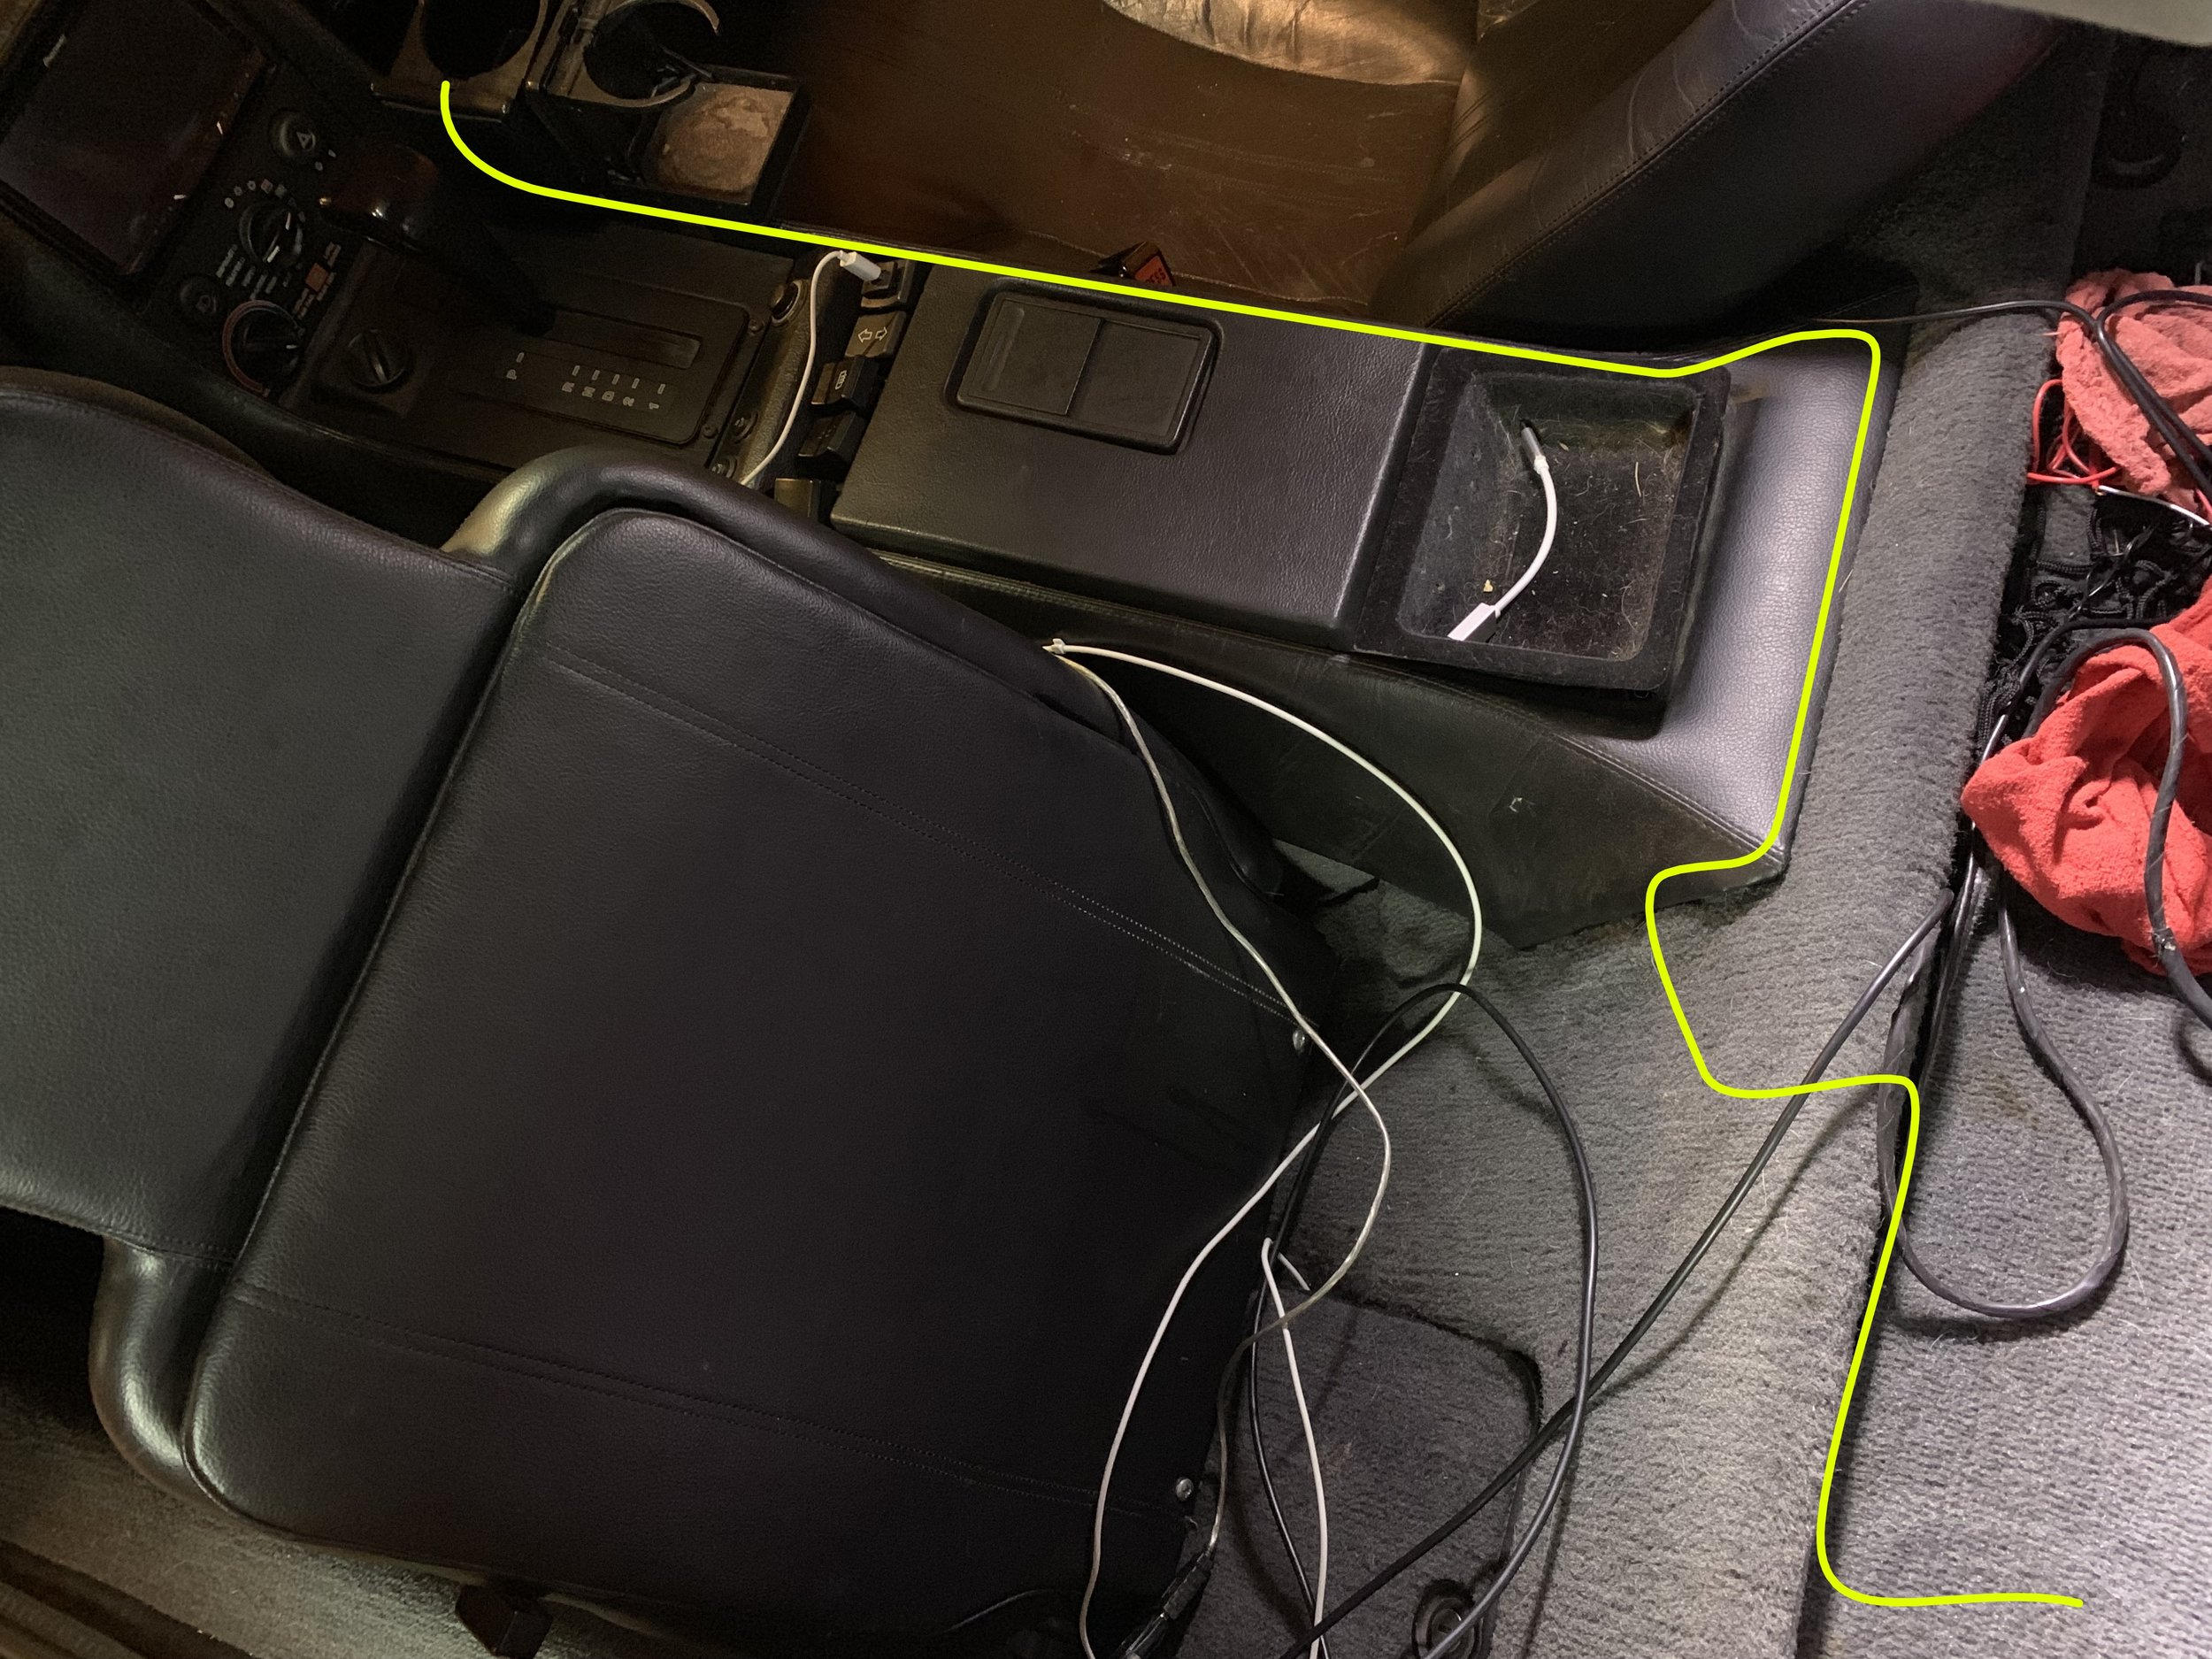 The path (yellow) of the DB15 cable from MegaSquart (bottom right, behind the driver's seat) to the passenger side of the cabin (top left).